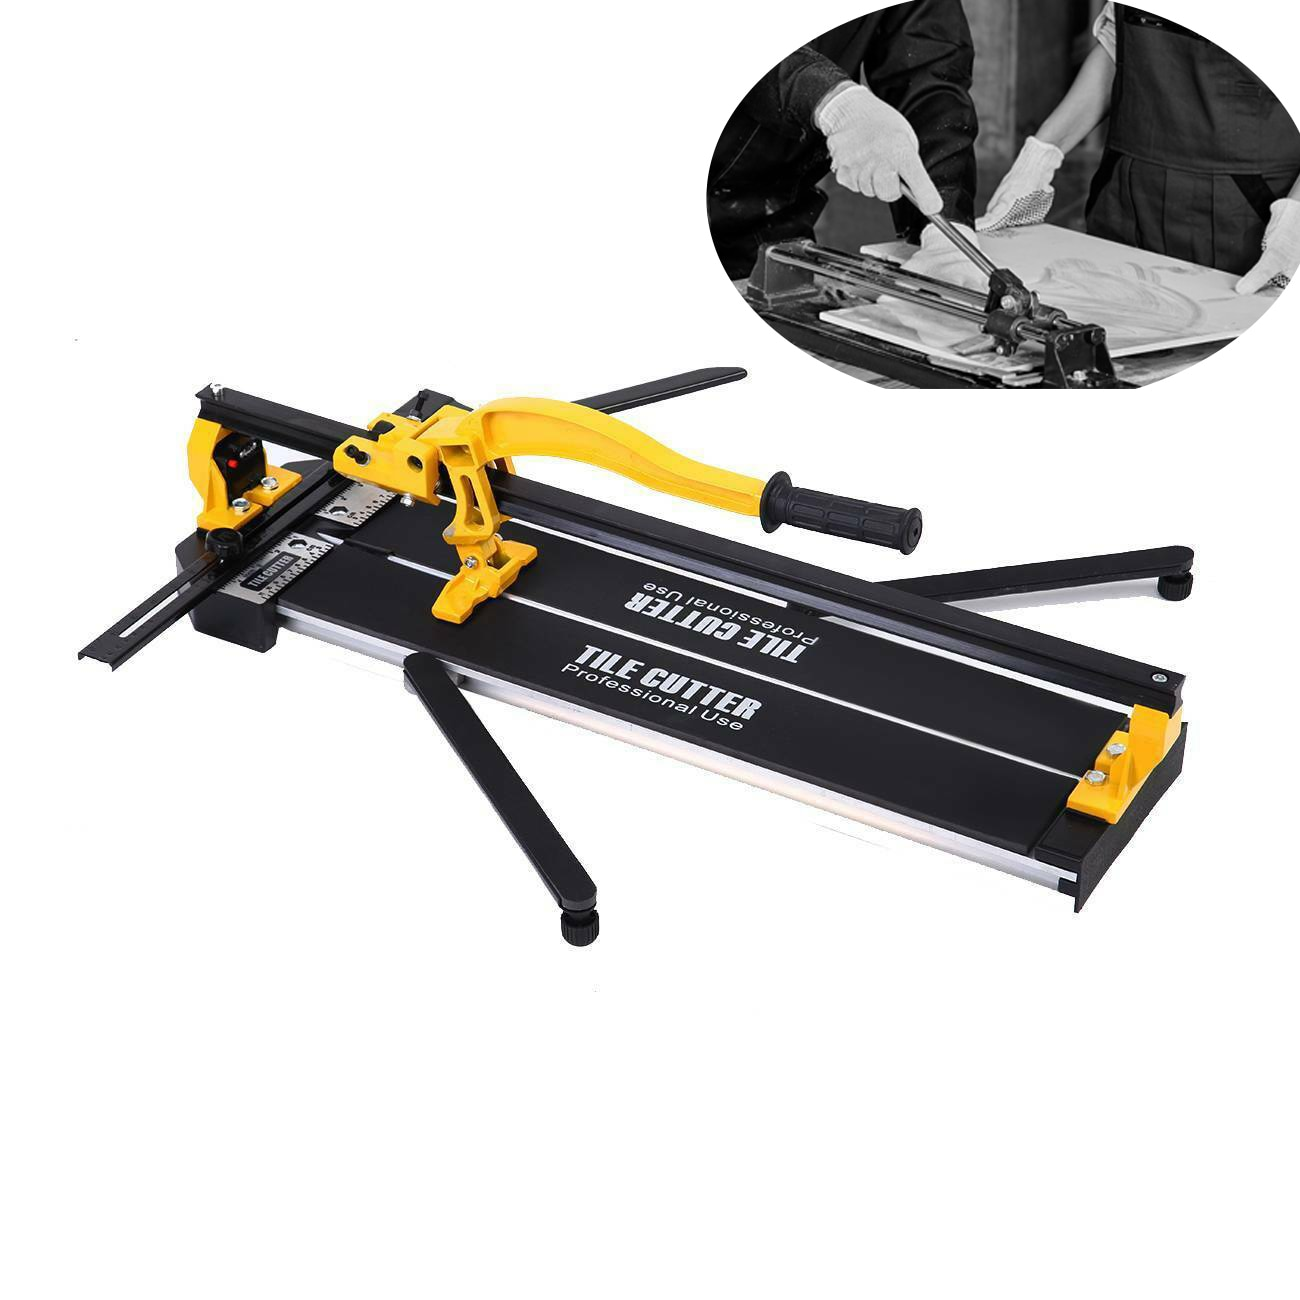 Honhill Tile Cutting Machine 600 mm Professional Tile Cutter Laser Positioning Manual Tile Cutter Cutting Thickness 6-15mm